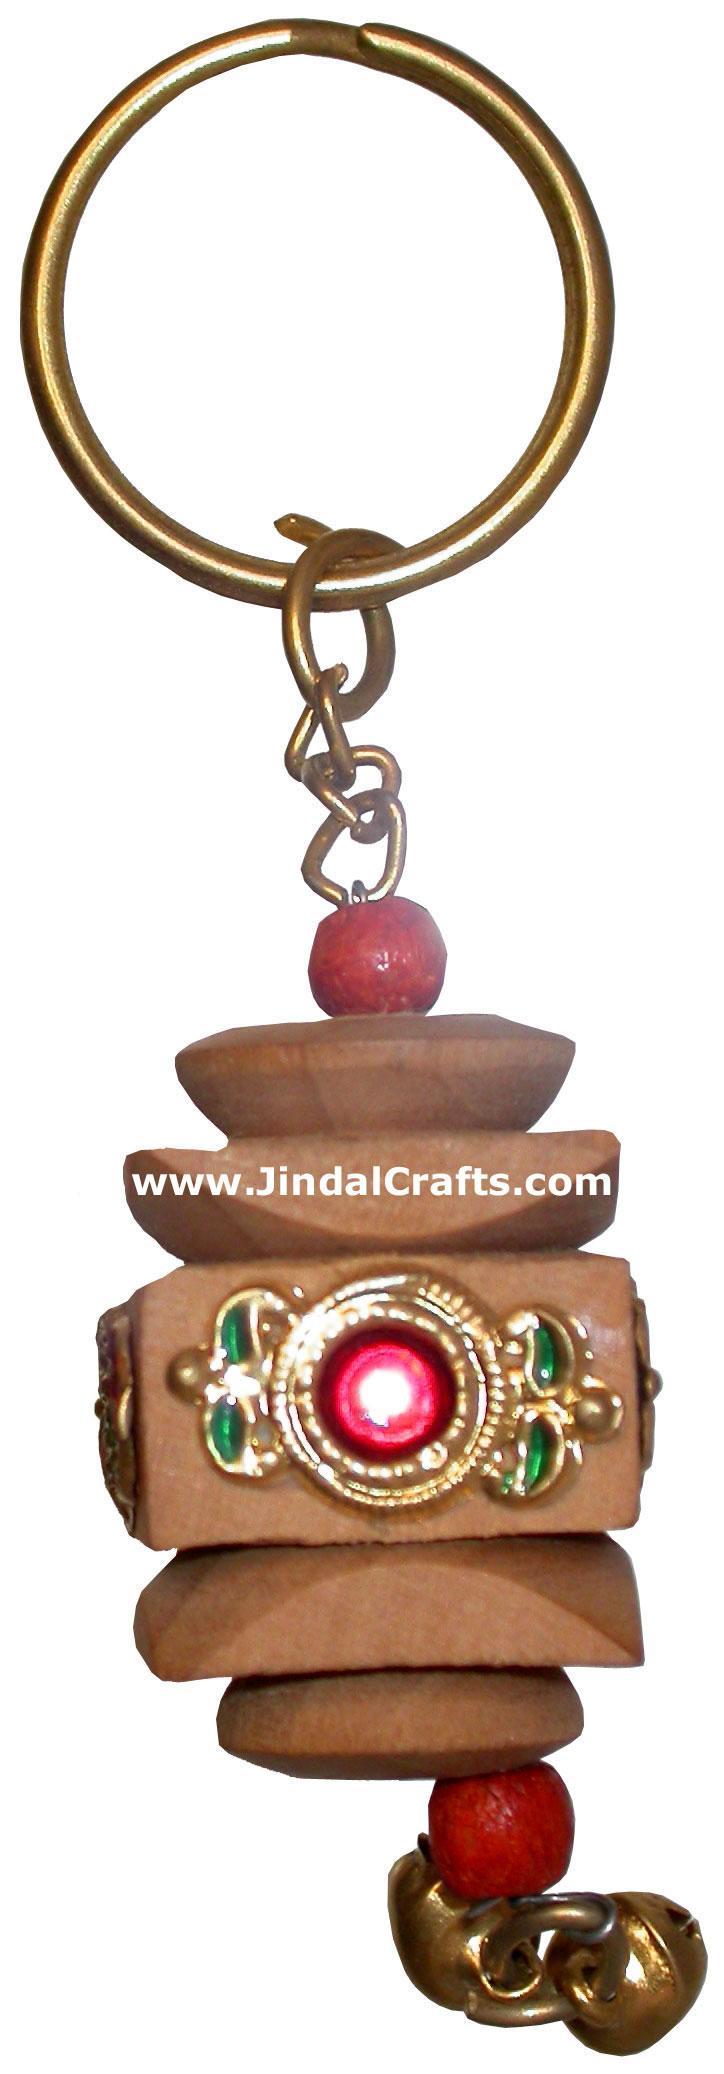 Hand Carved Square Jhumka Key Chain Ring India Artifact